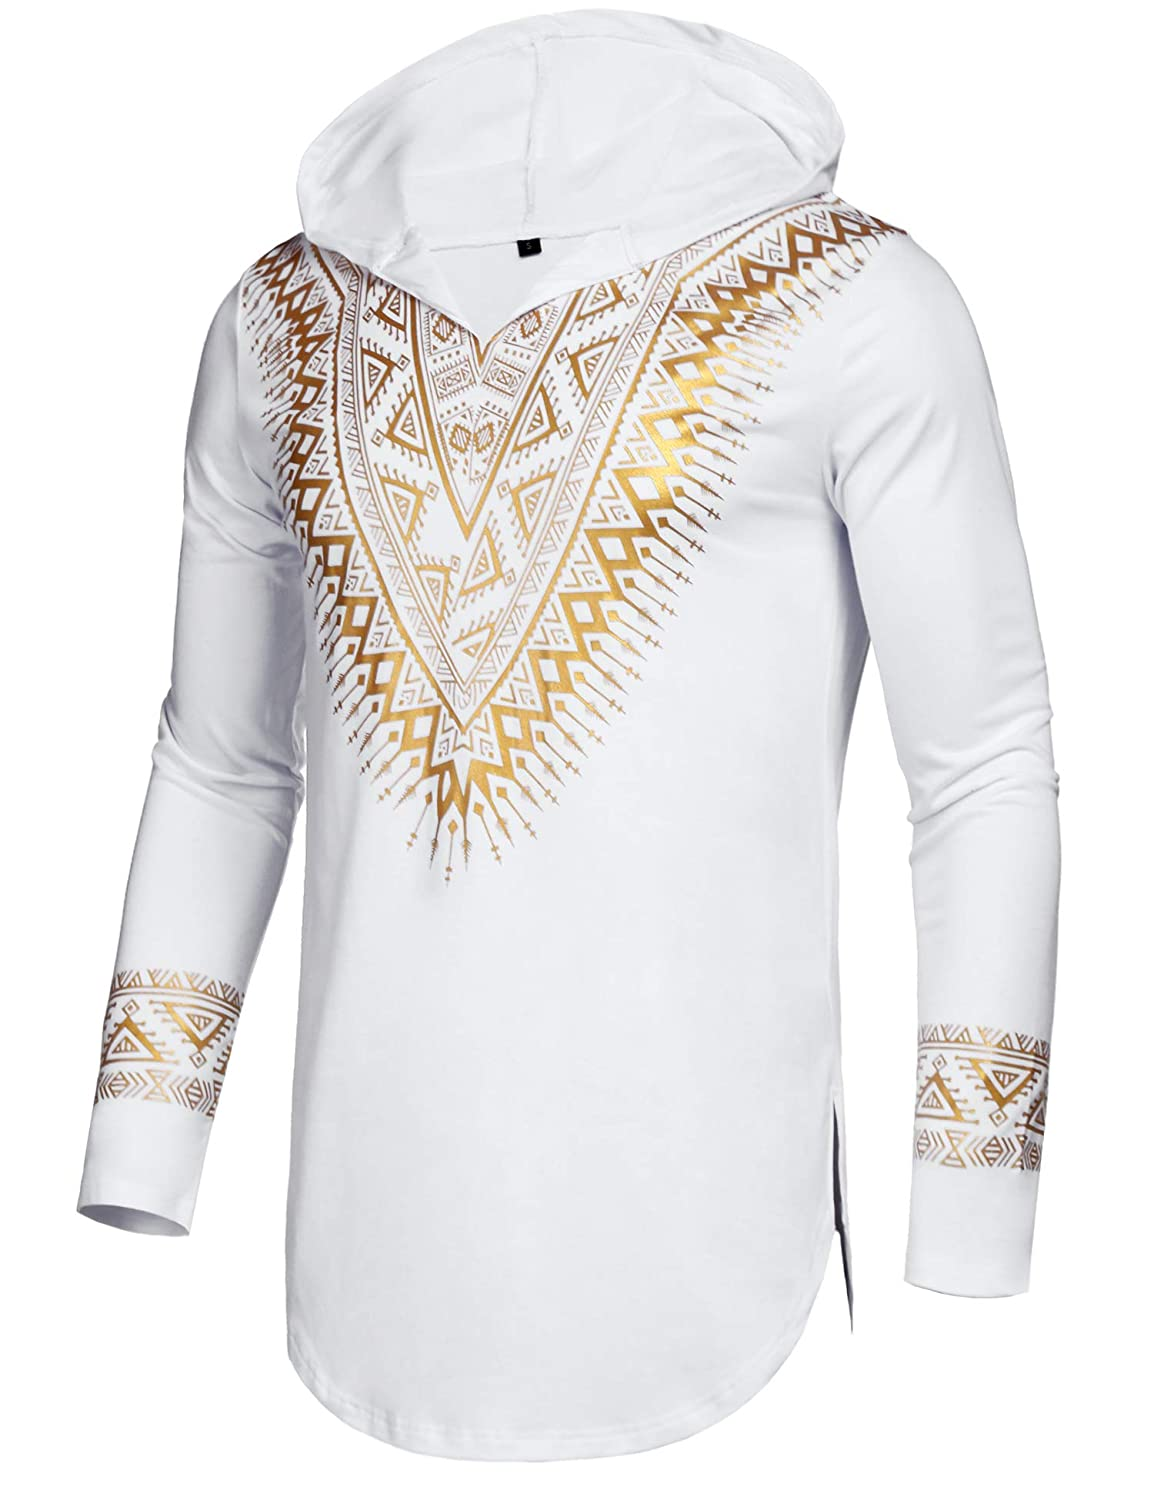 Pacinoble Mens African Dashiki Shirt Metallic Floral Printed Slim Fit Long Sleeve Shirts Blouse